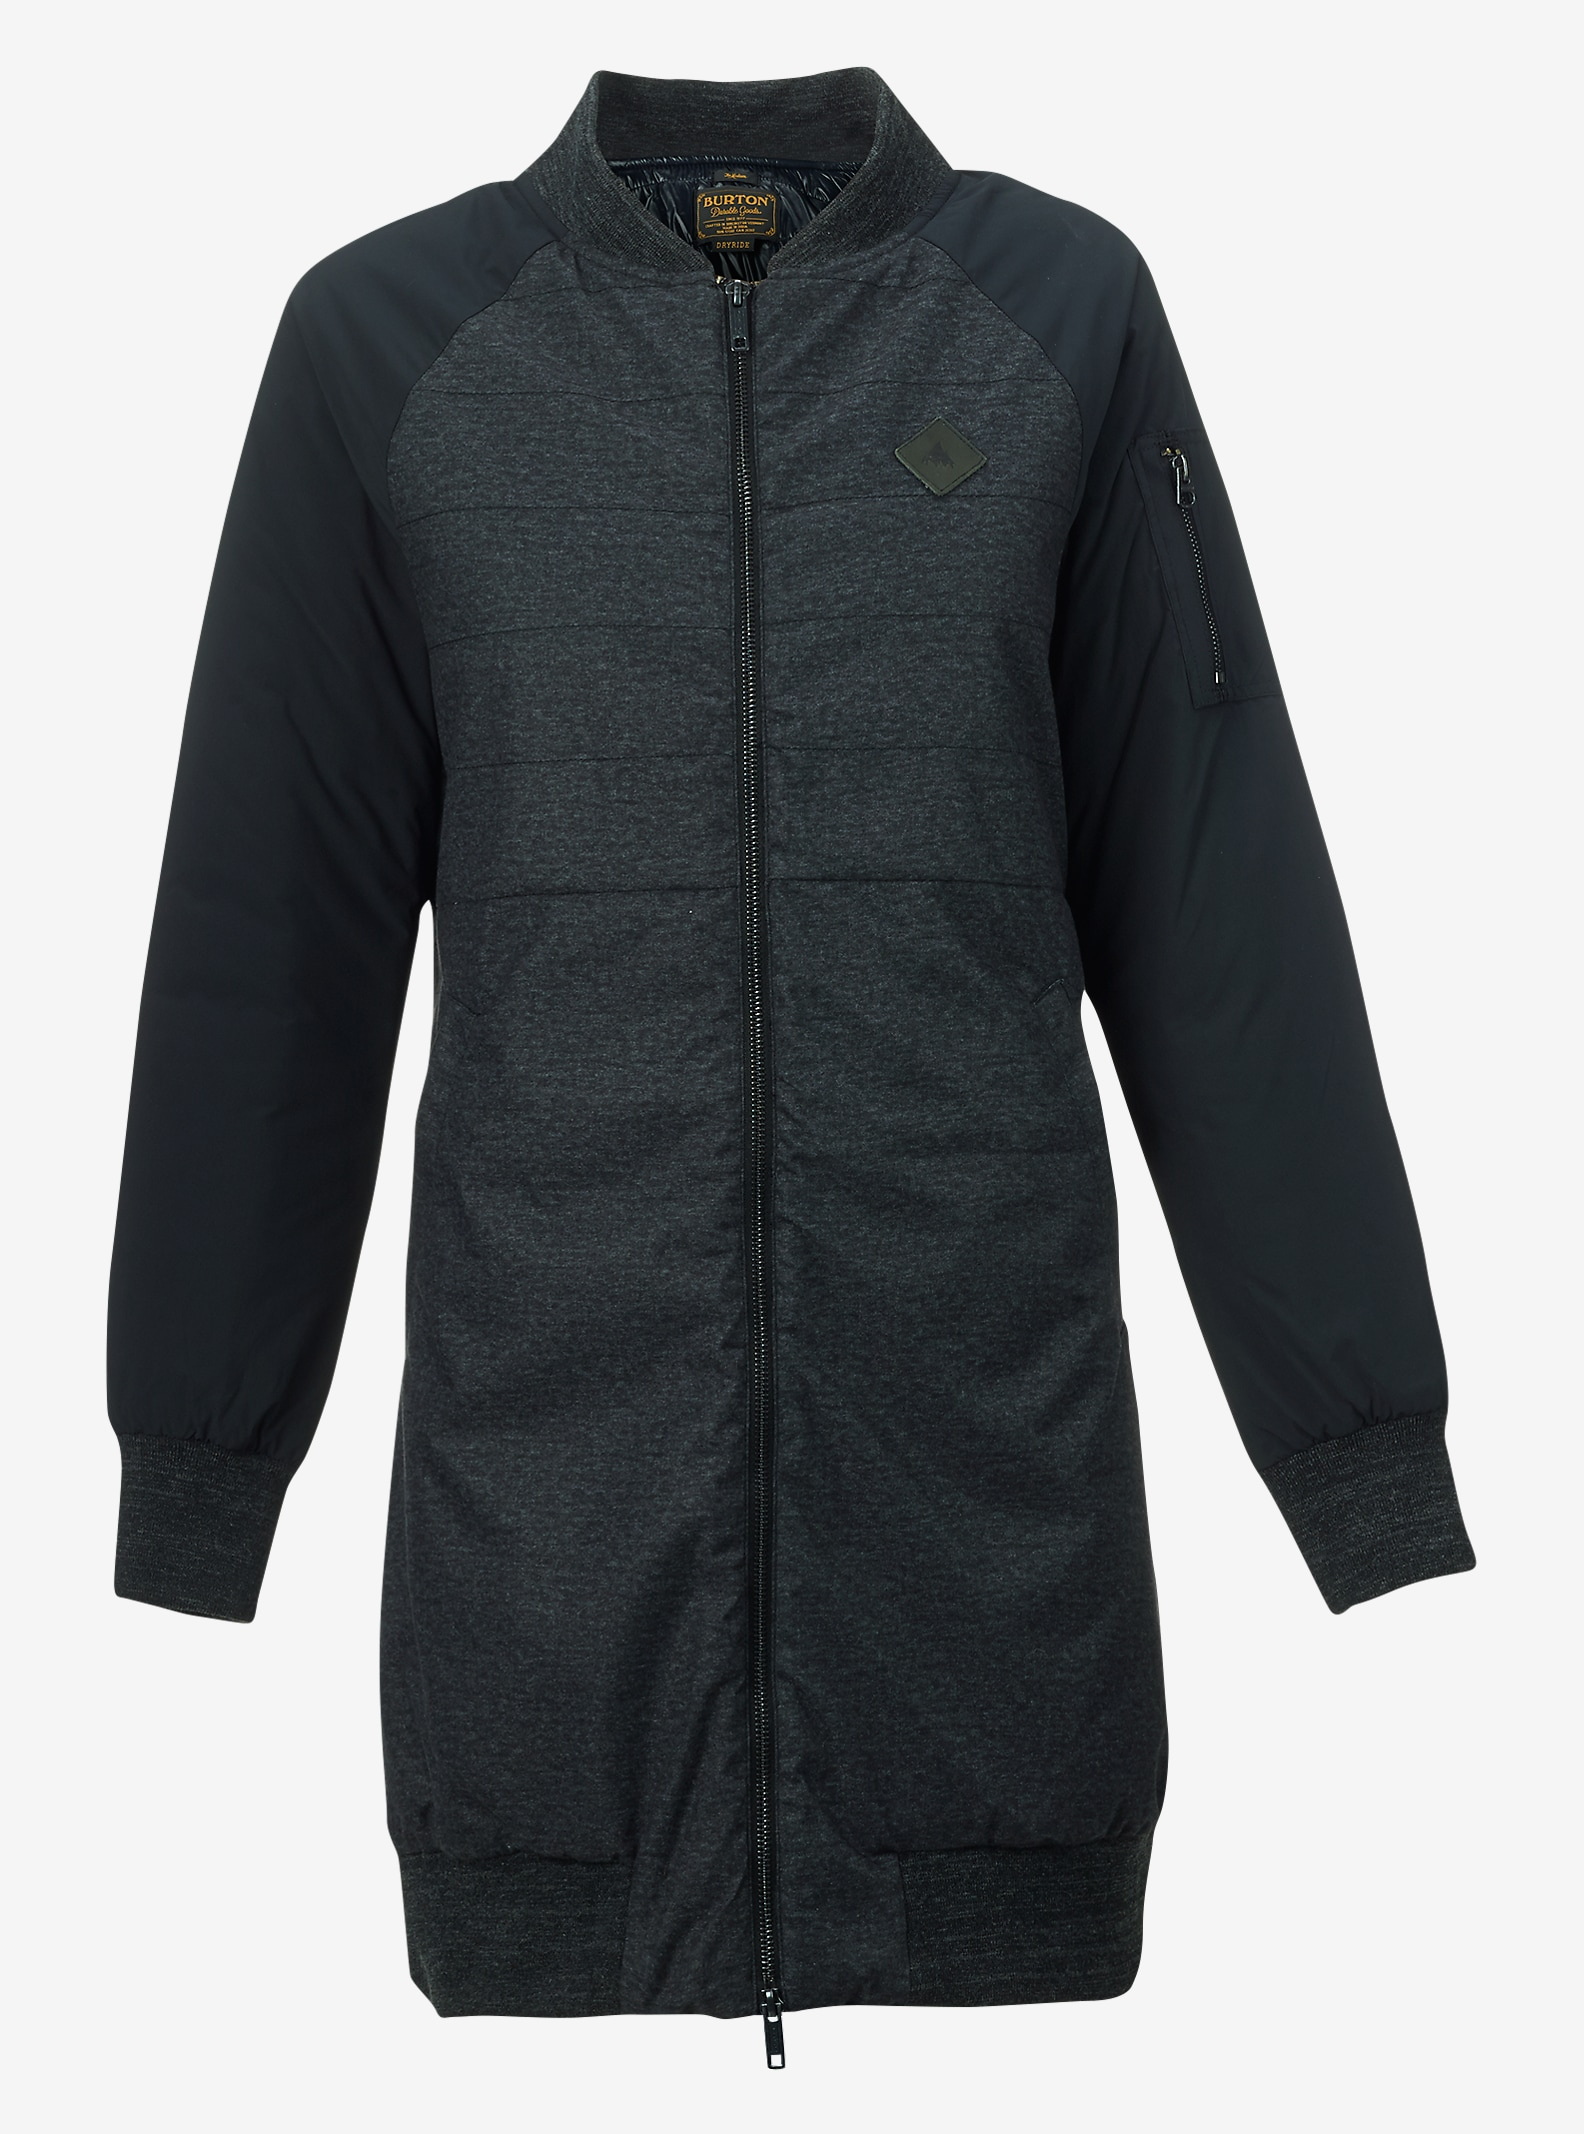 Burton Shelburne Jacket shown in True Black Heather